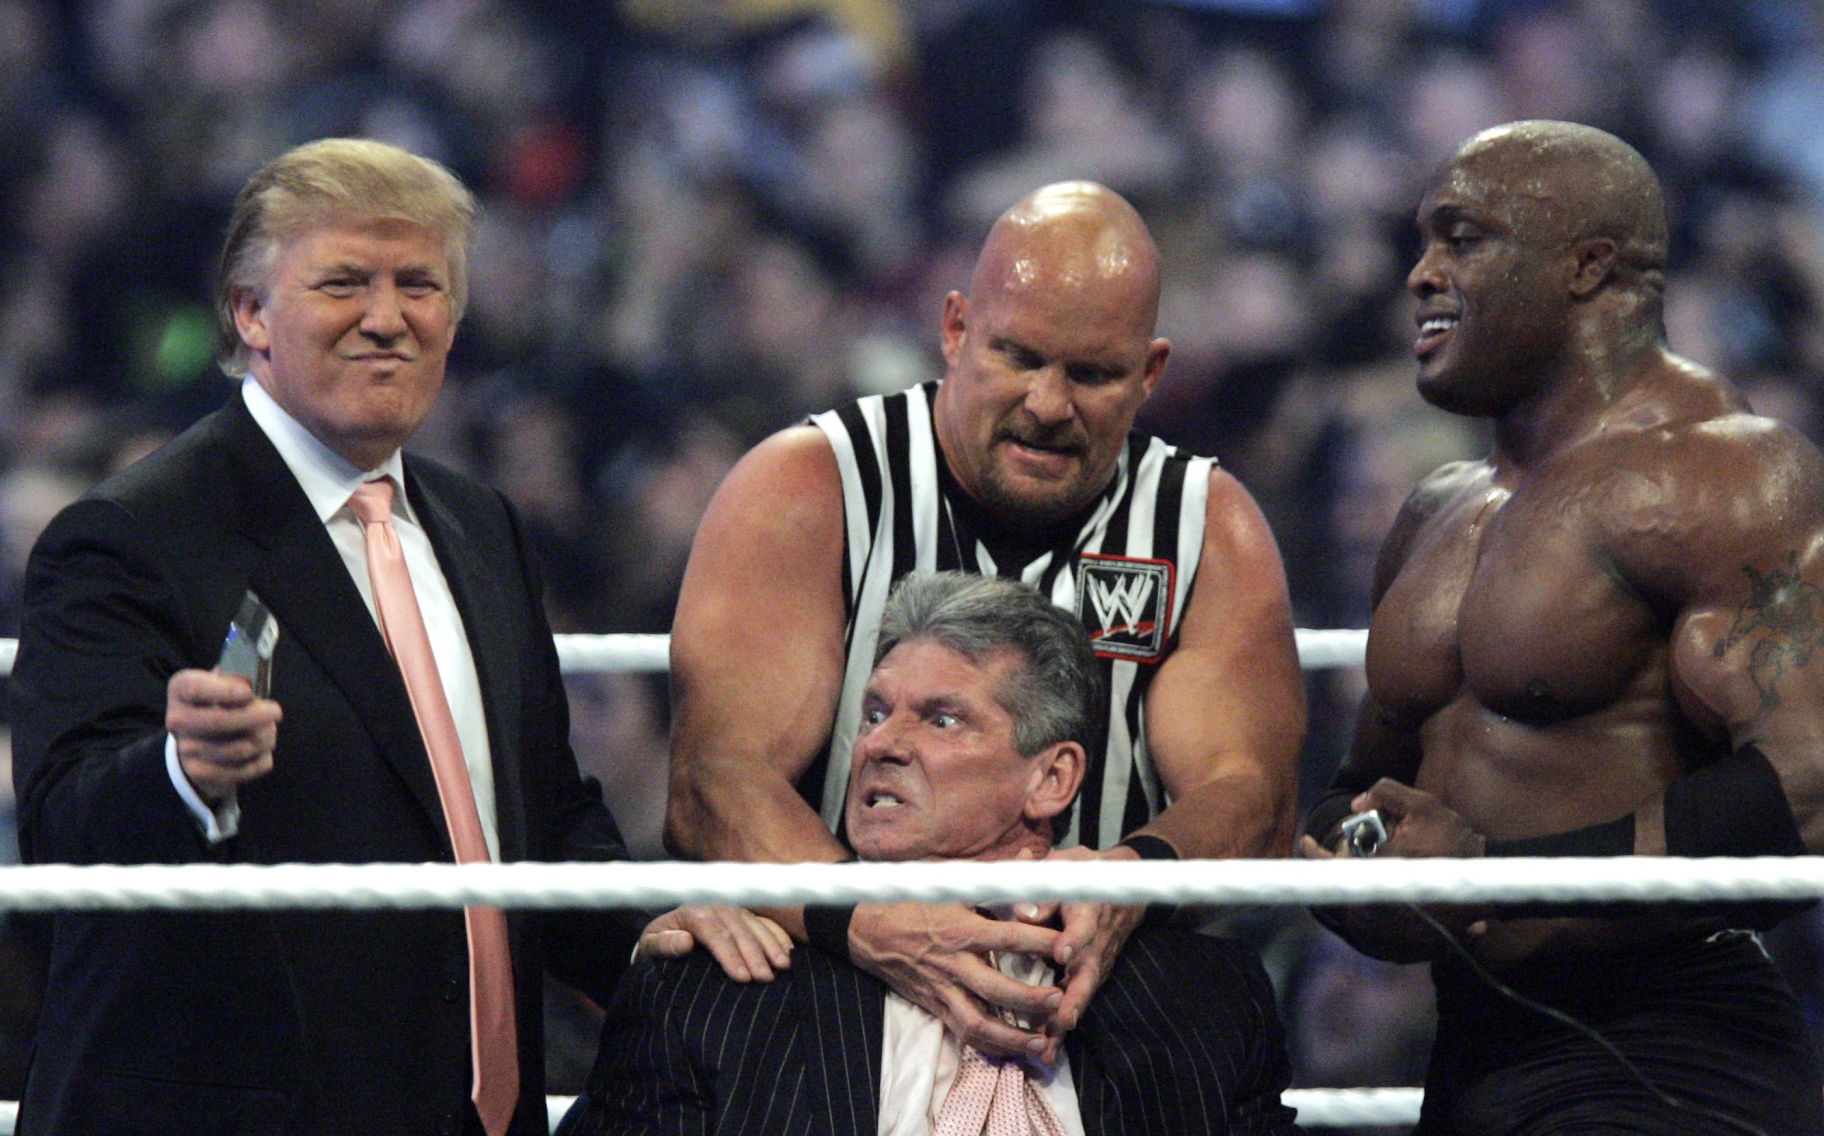 To Understand Trump Watch More Pro Wrestling Commentary Postandcourier Com